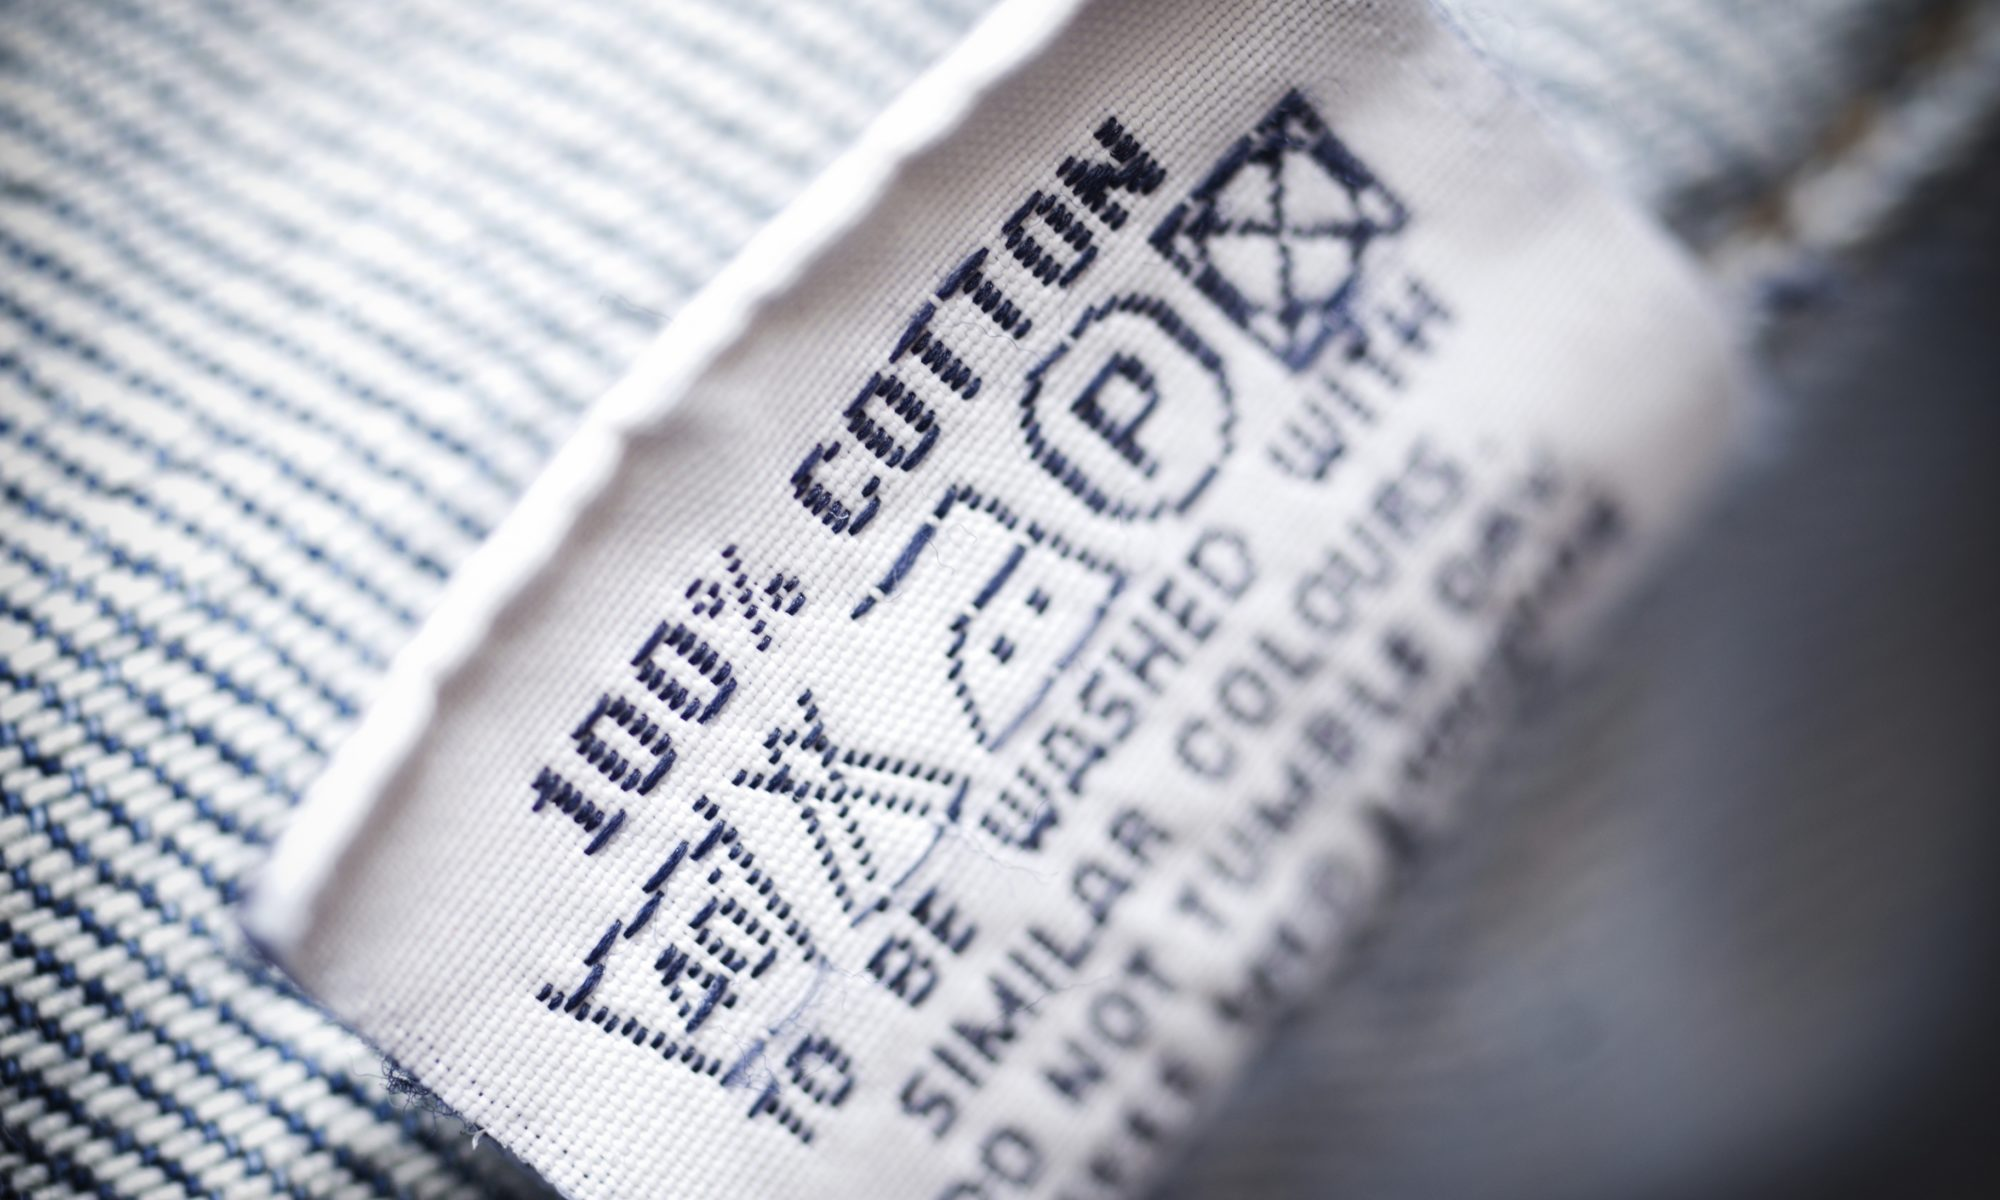 knowing what laundry symbols means will increase the life of your clothing